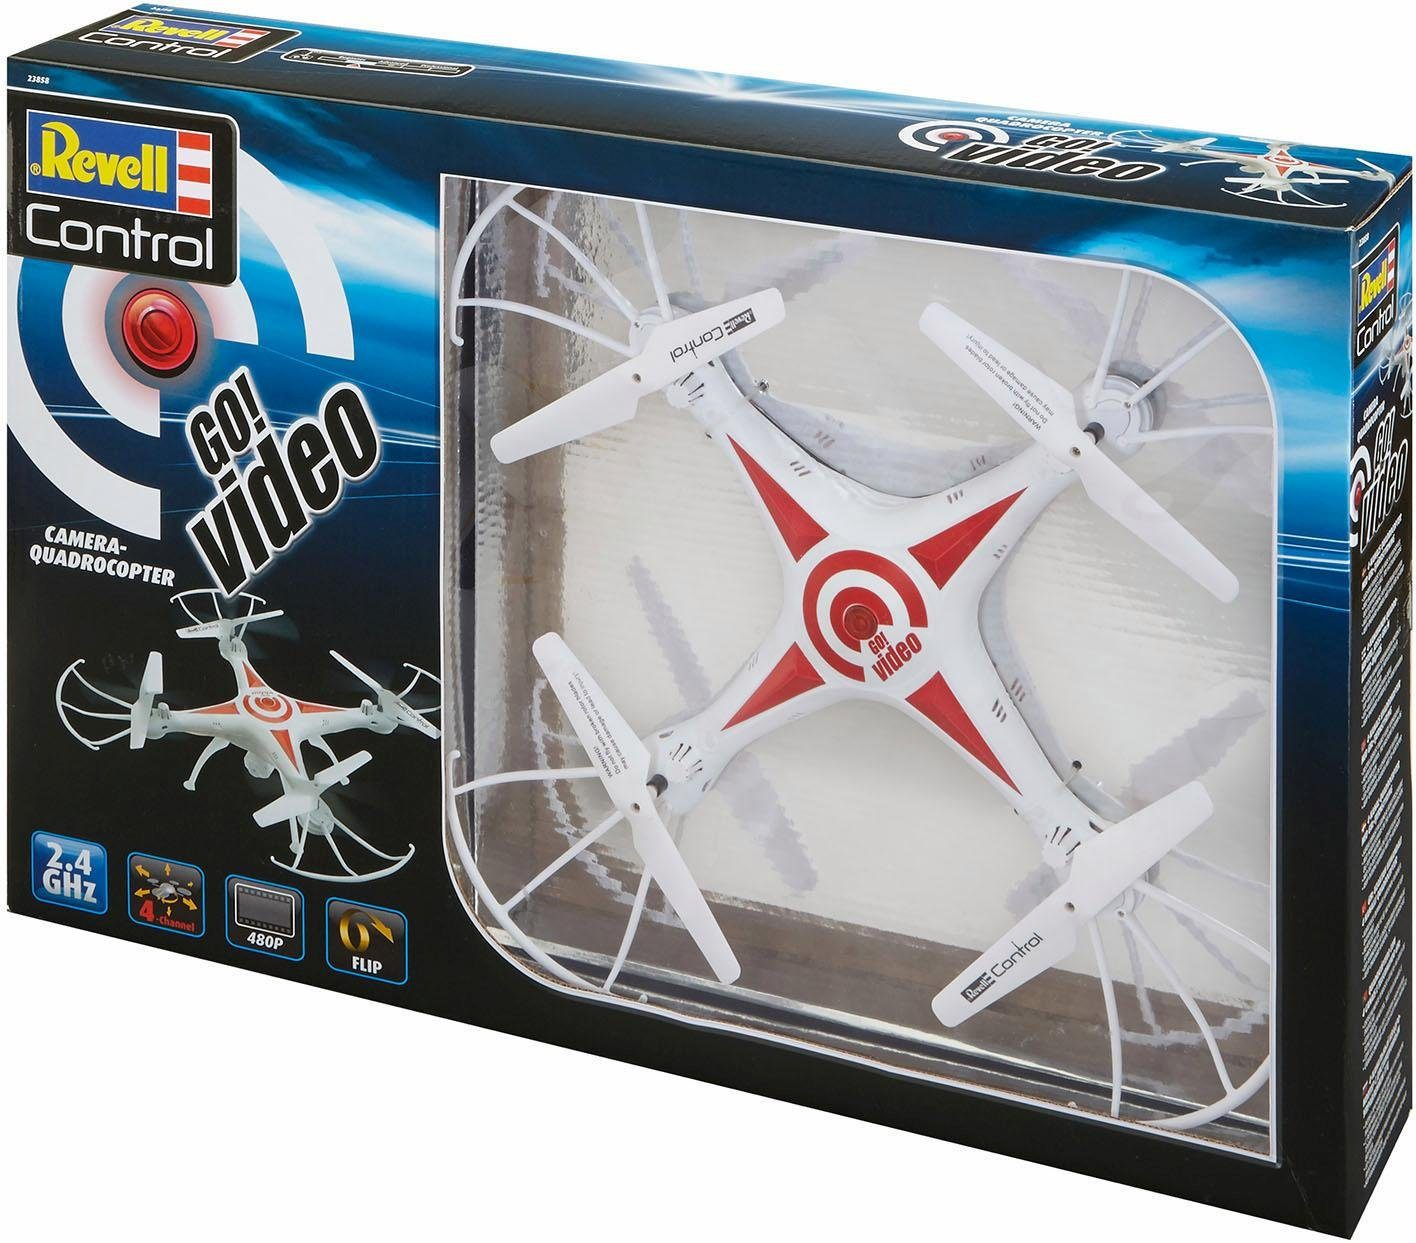 Revell RC Quadrocopter mit Kamera, »Revell® control, Go! Video, 2,4 GHz«